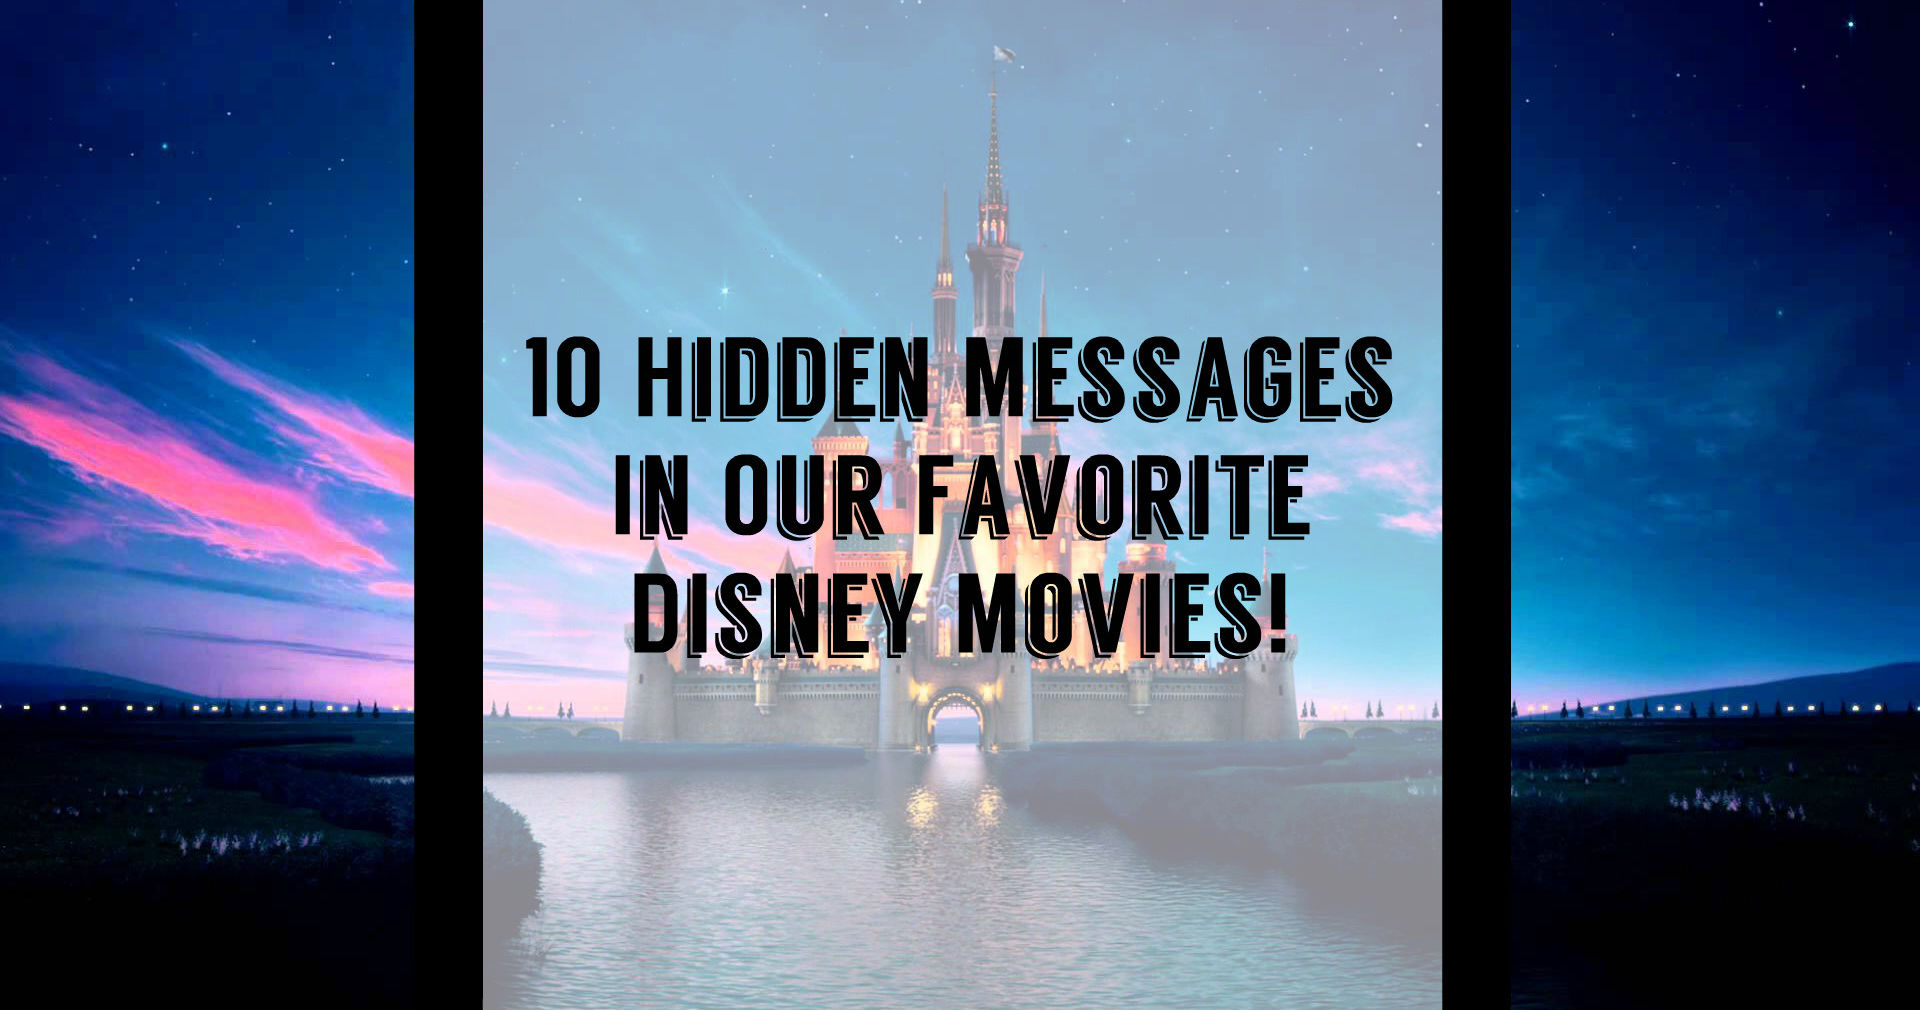 10 Alarming Hidden Messages In Our Favorite Disney Movies